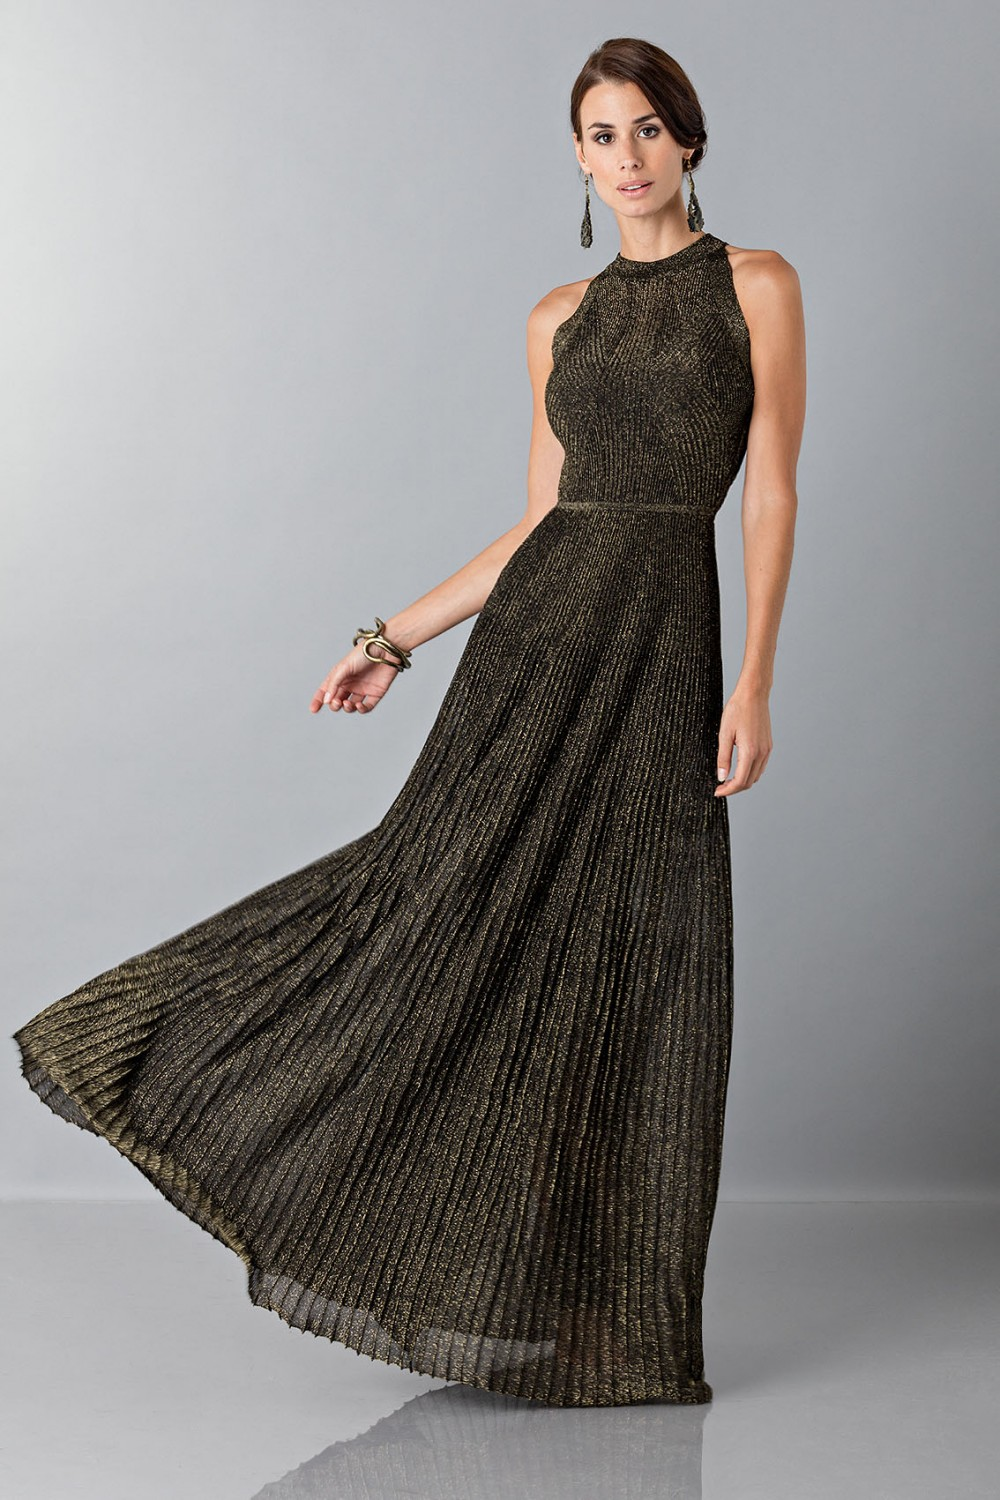 Dress with gold textures